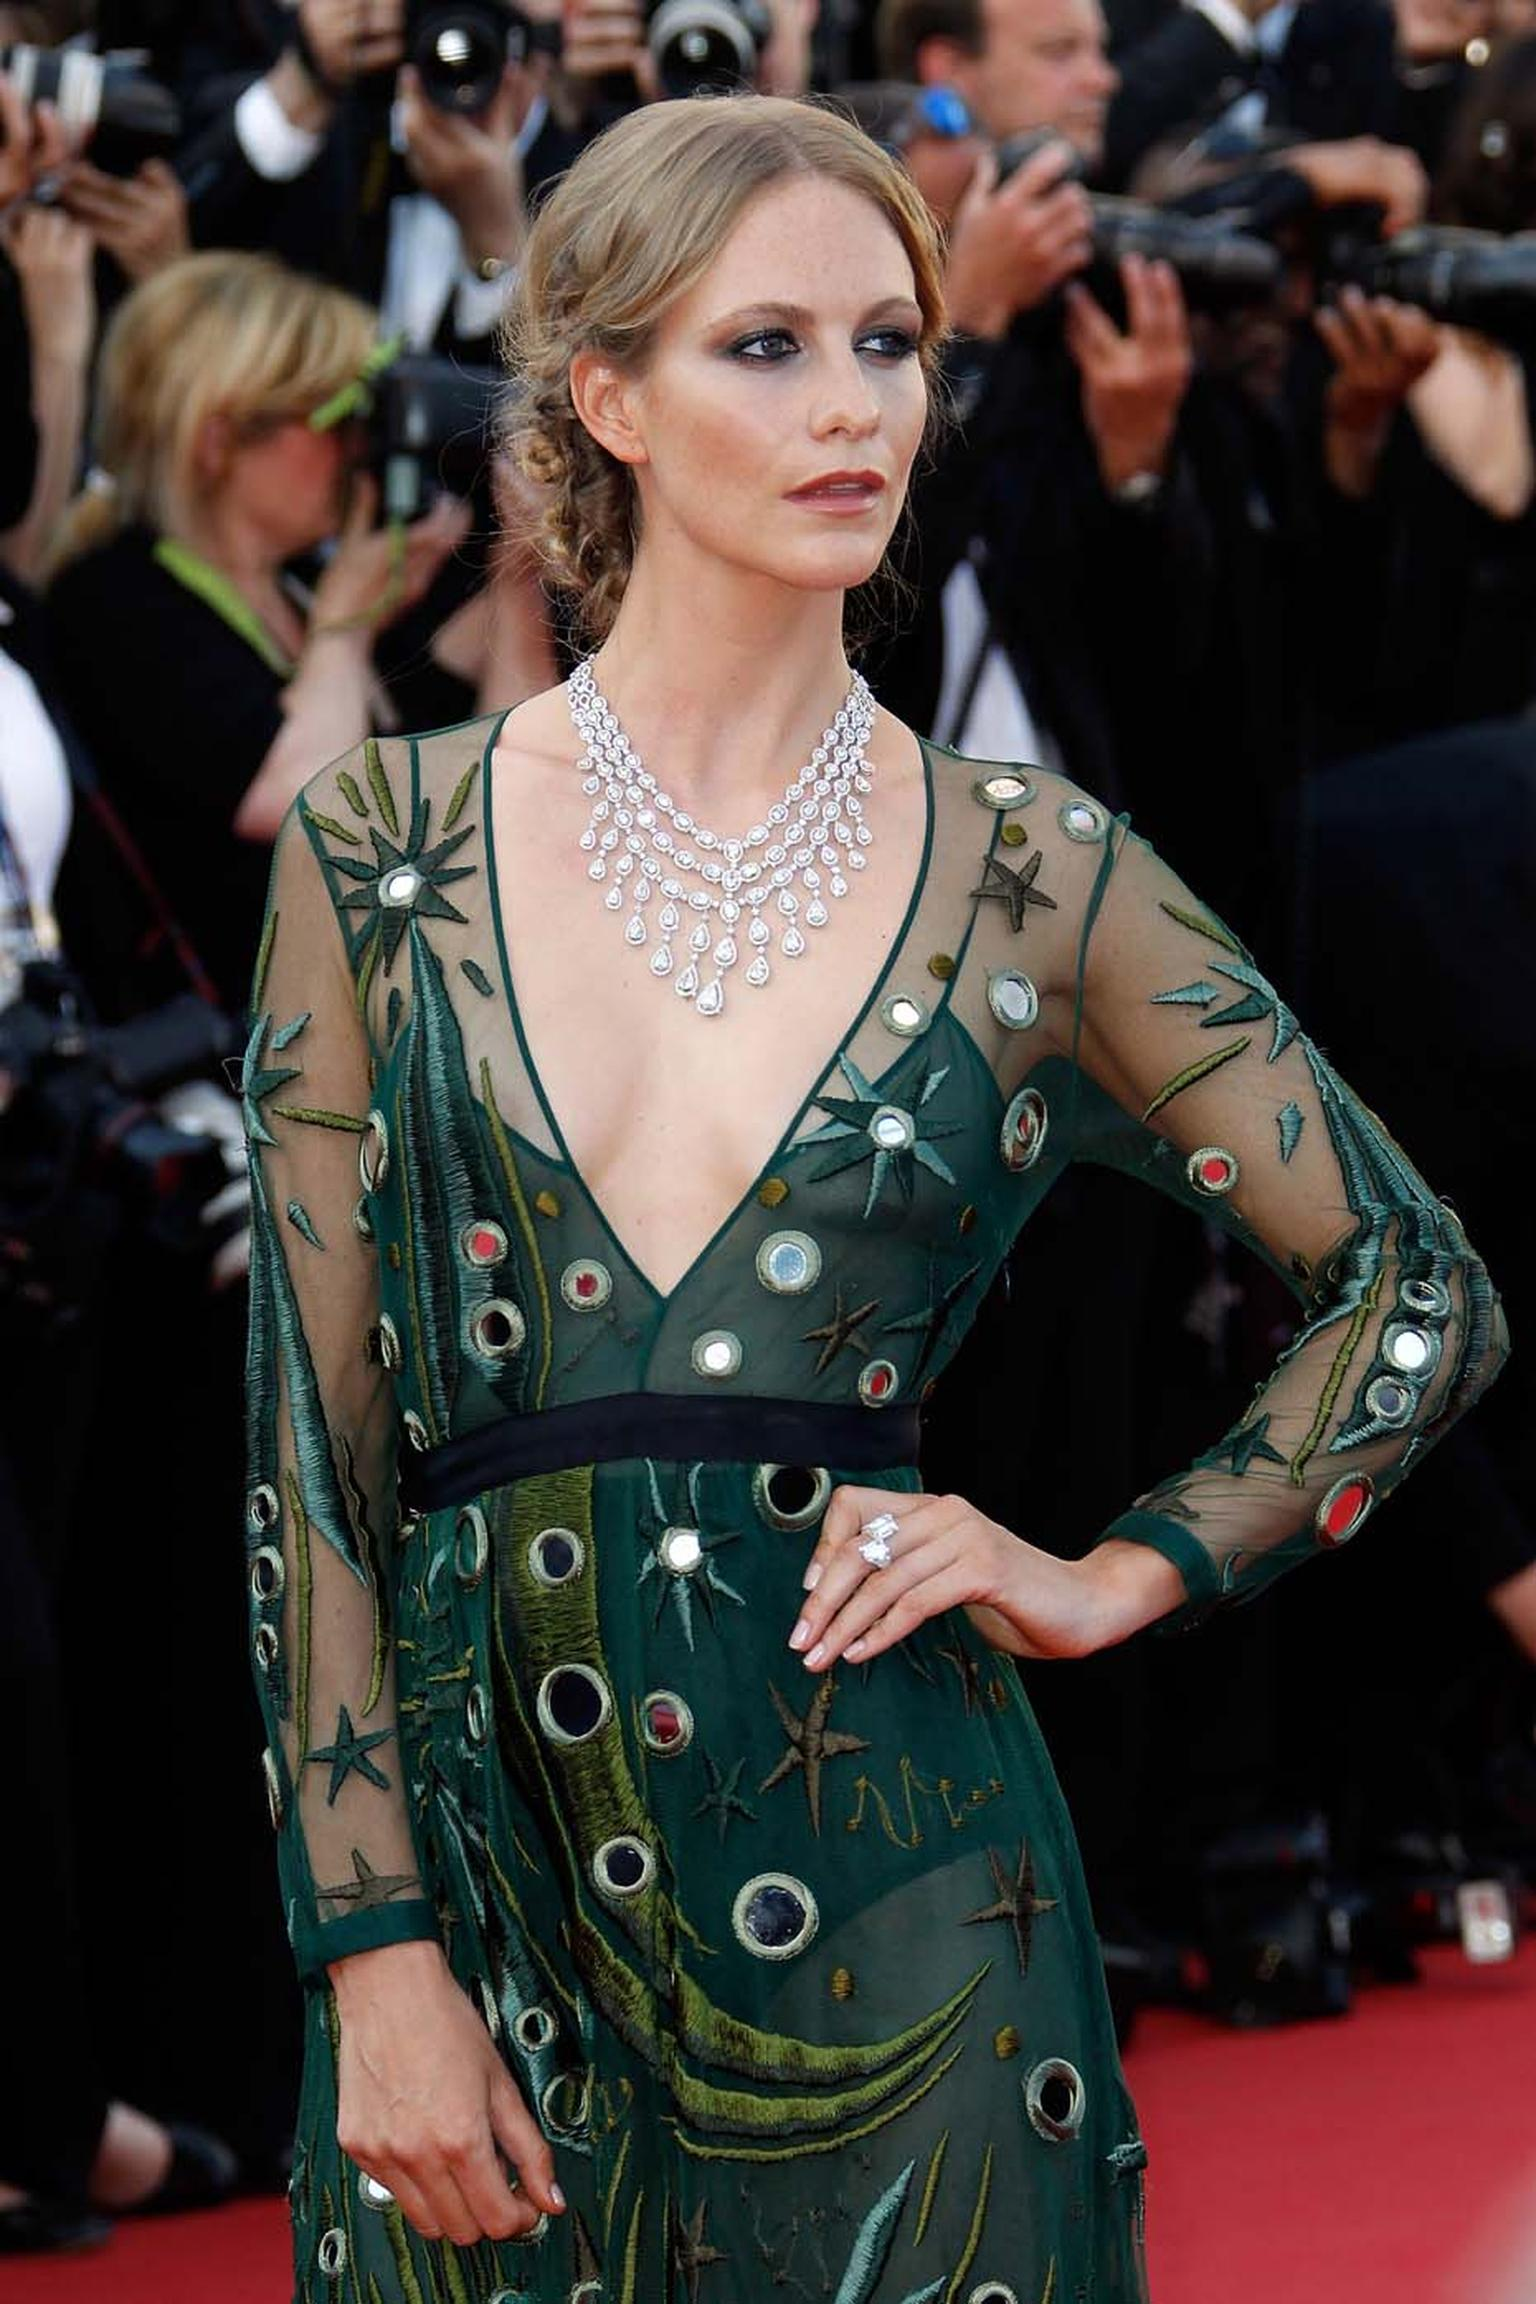 Poppy Delevingne in Chopard jewellery